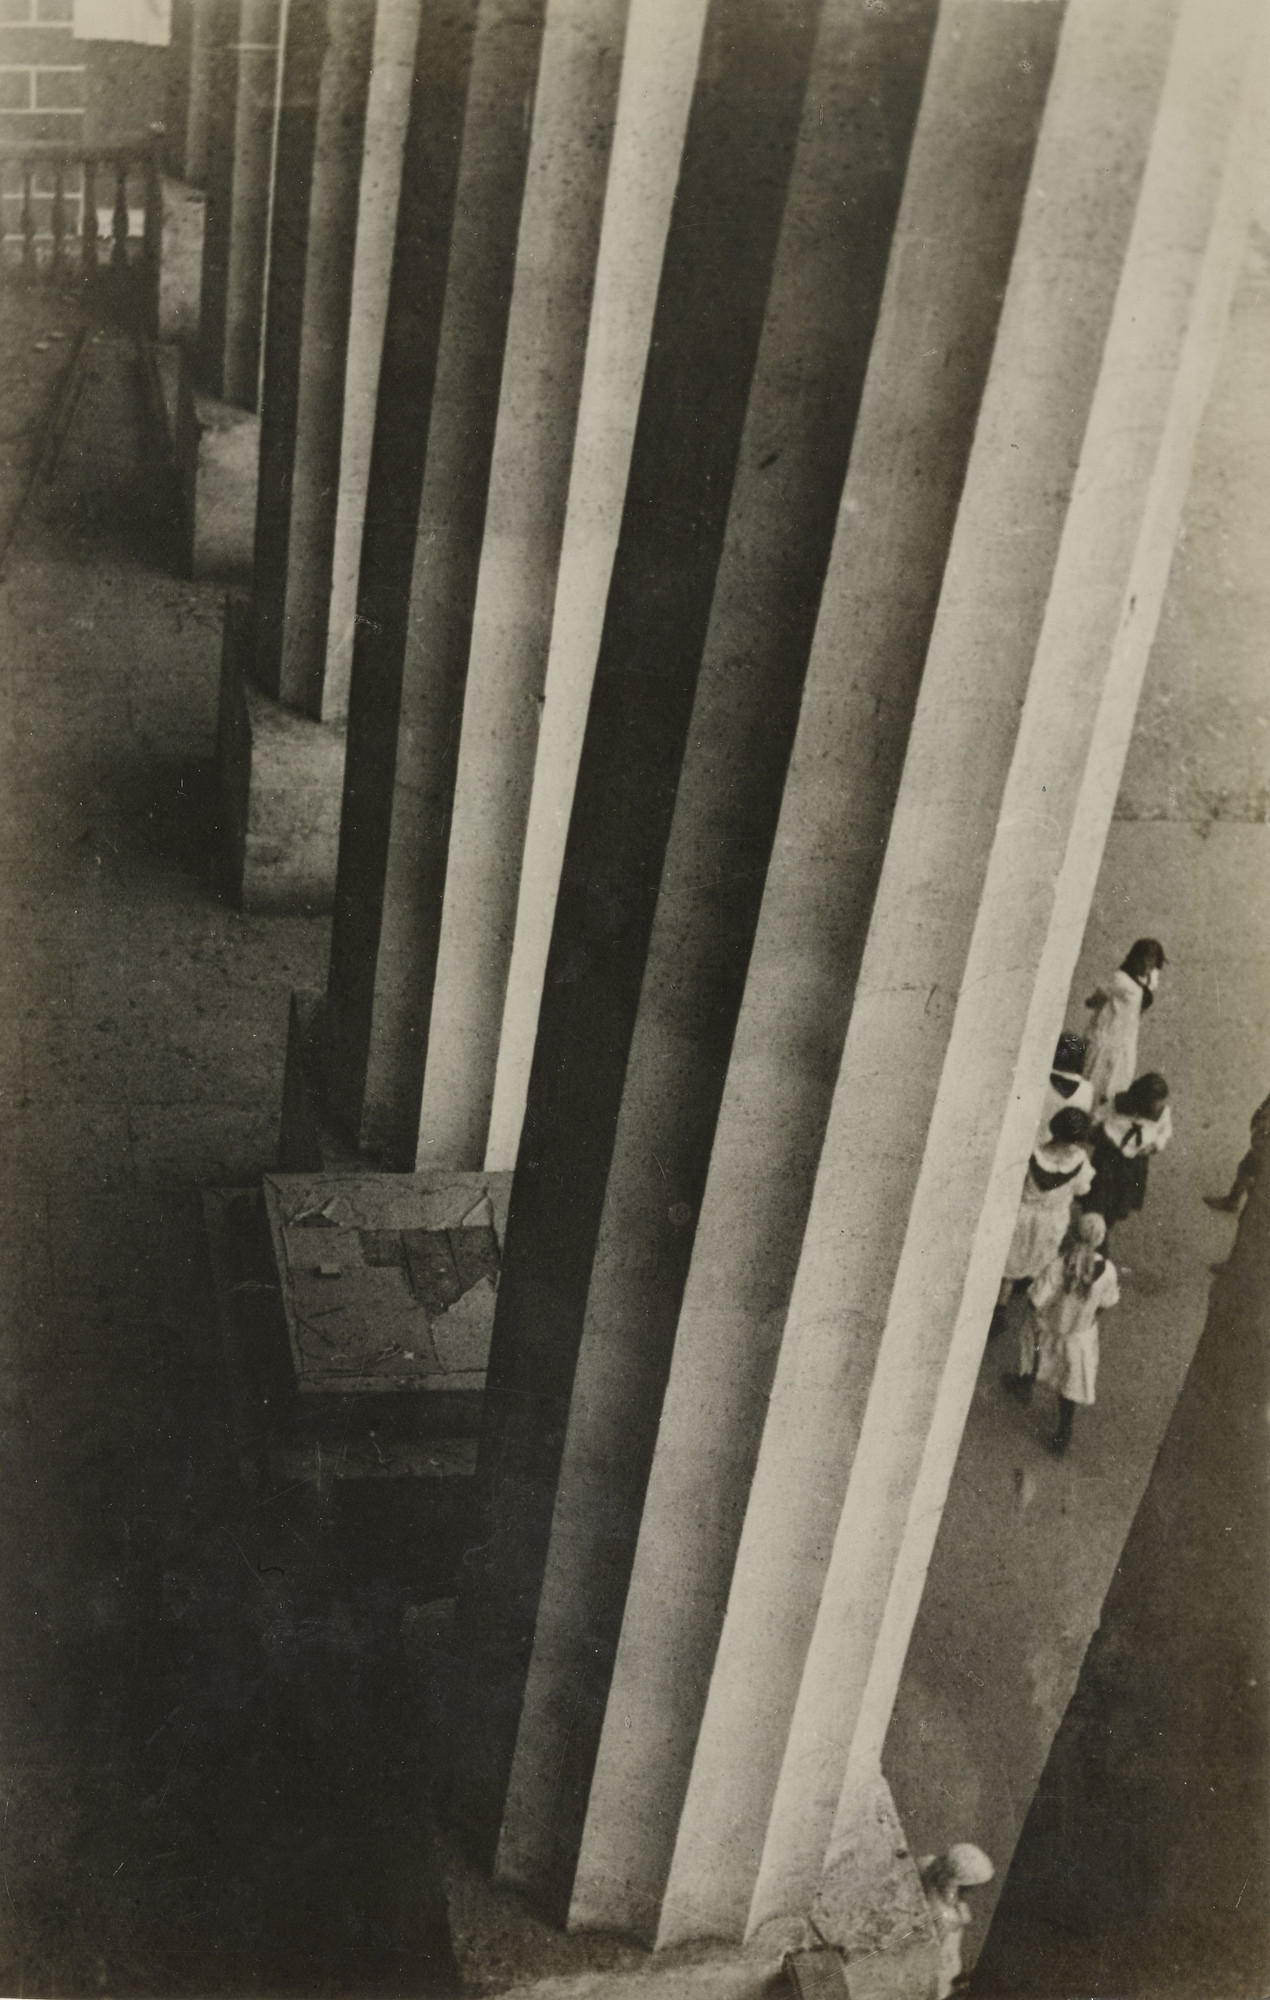 Aleksandr Rodchenko. Columns of the Museum of the Revolution. 1926